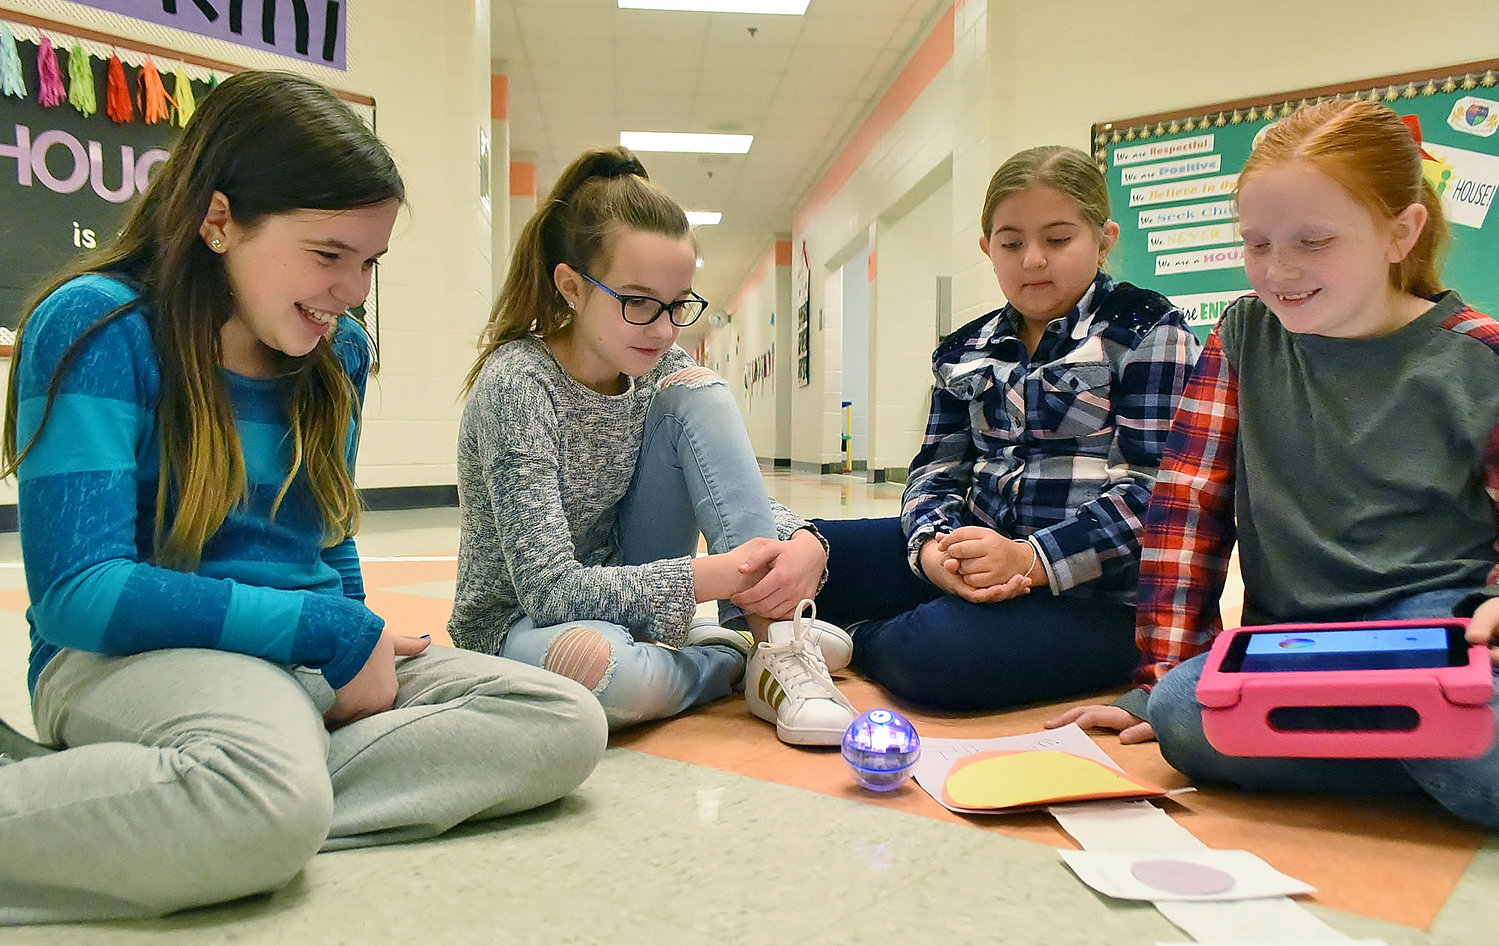 Clear Creek Elementary School fifth-graders, from left, Emma Phillips, Hailie Lieving, Brianna Morris and Amelia Carter work on creating a program for their Sphero robot.